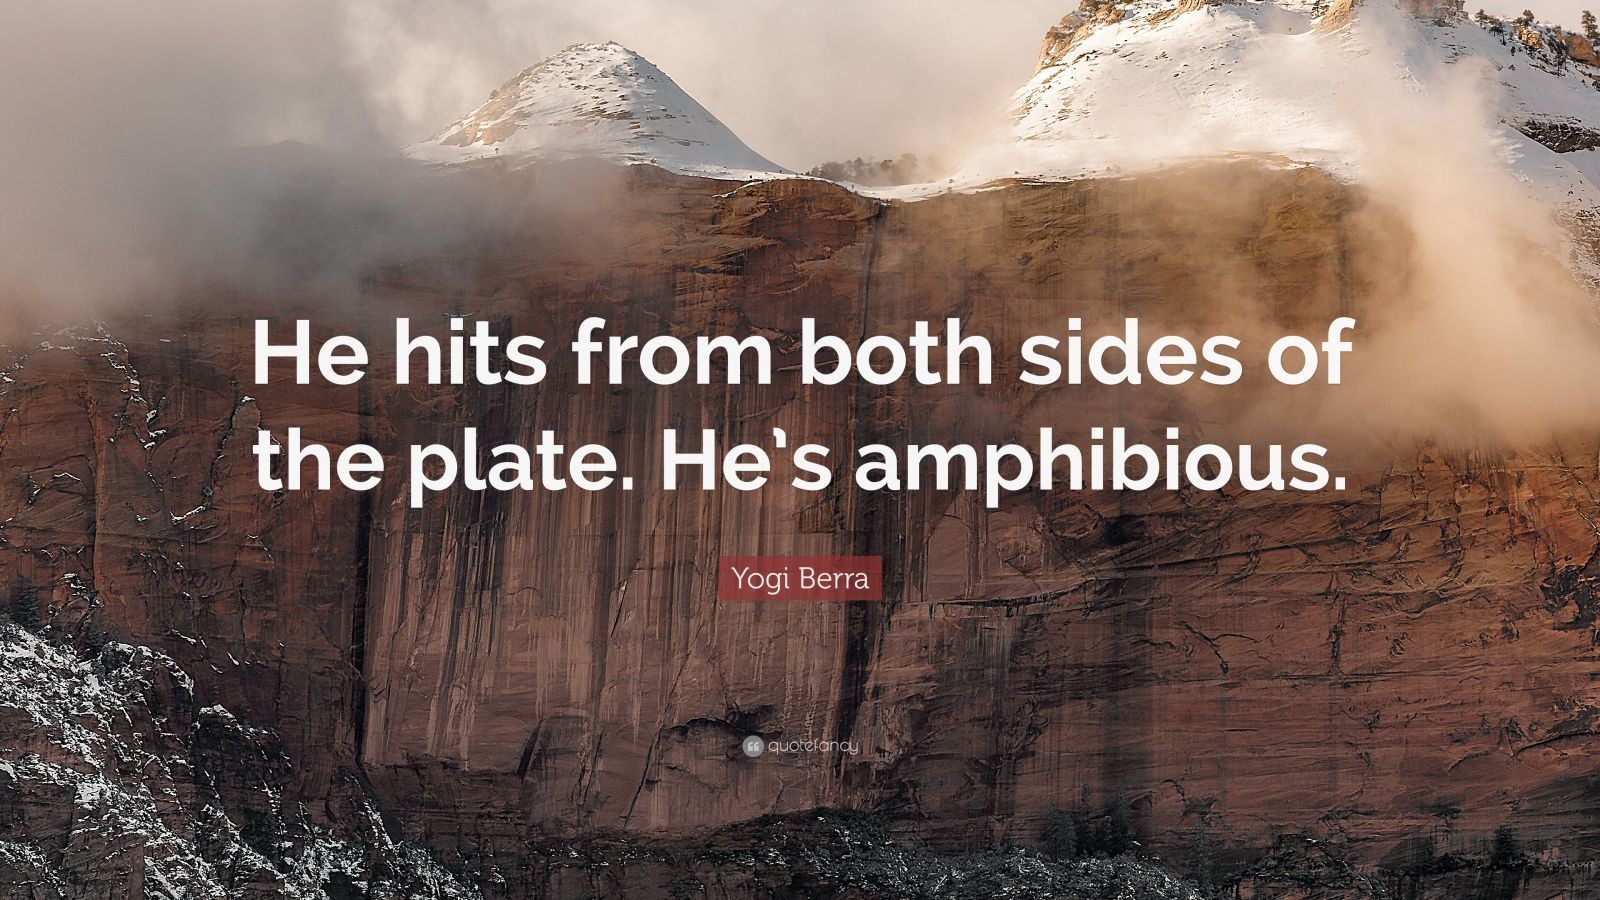 """Yogi Berra Quote: """"He hits from both sides of the plate. He's amphibious."""""""